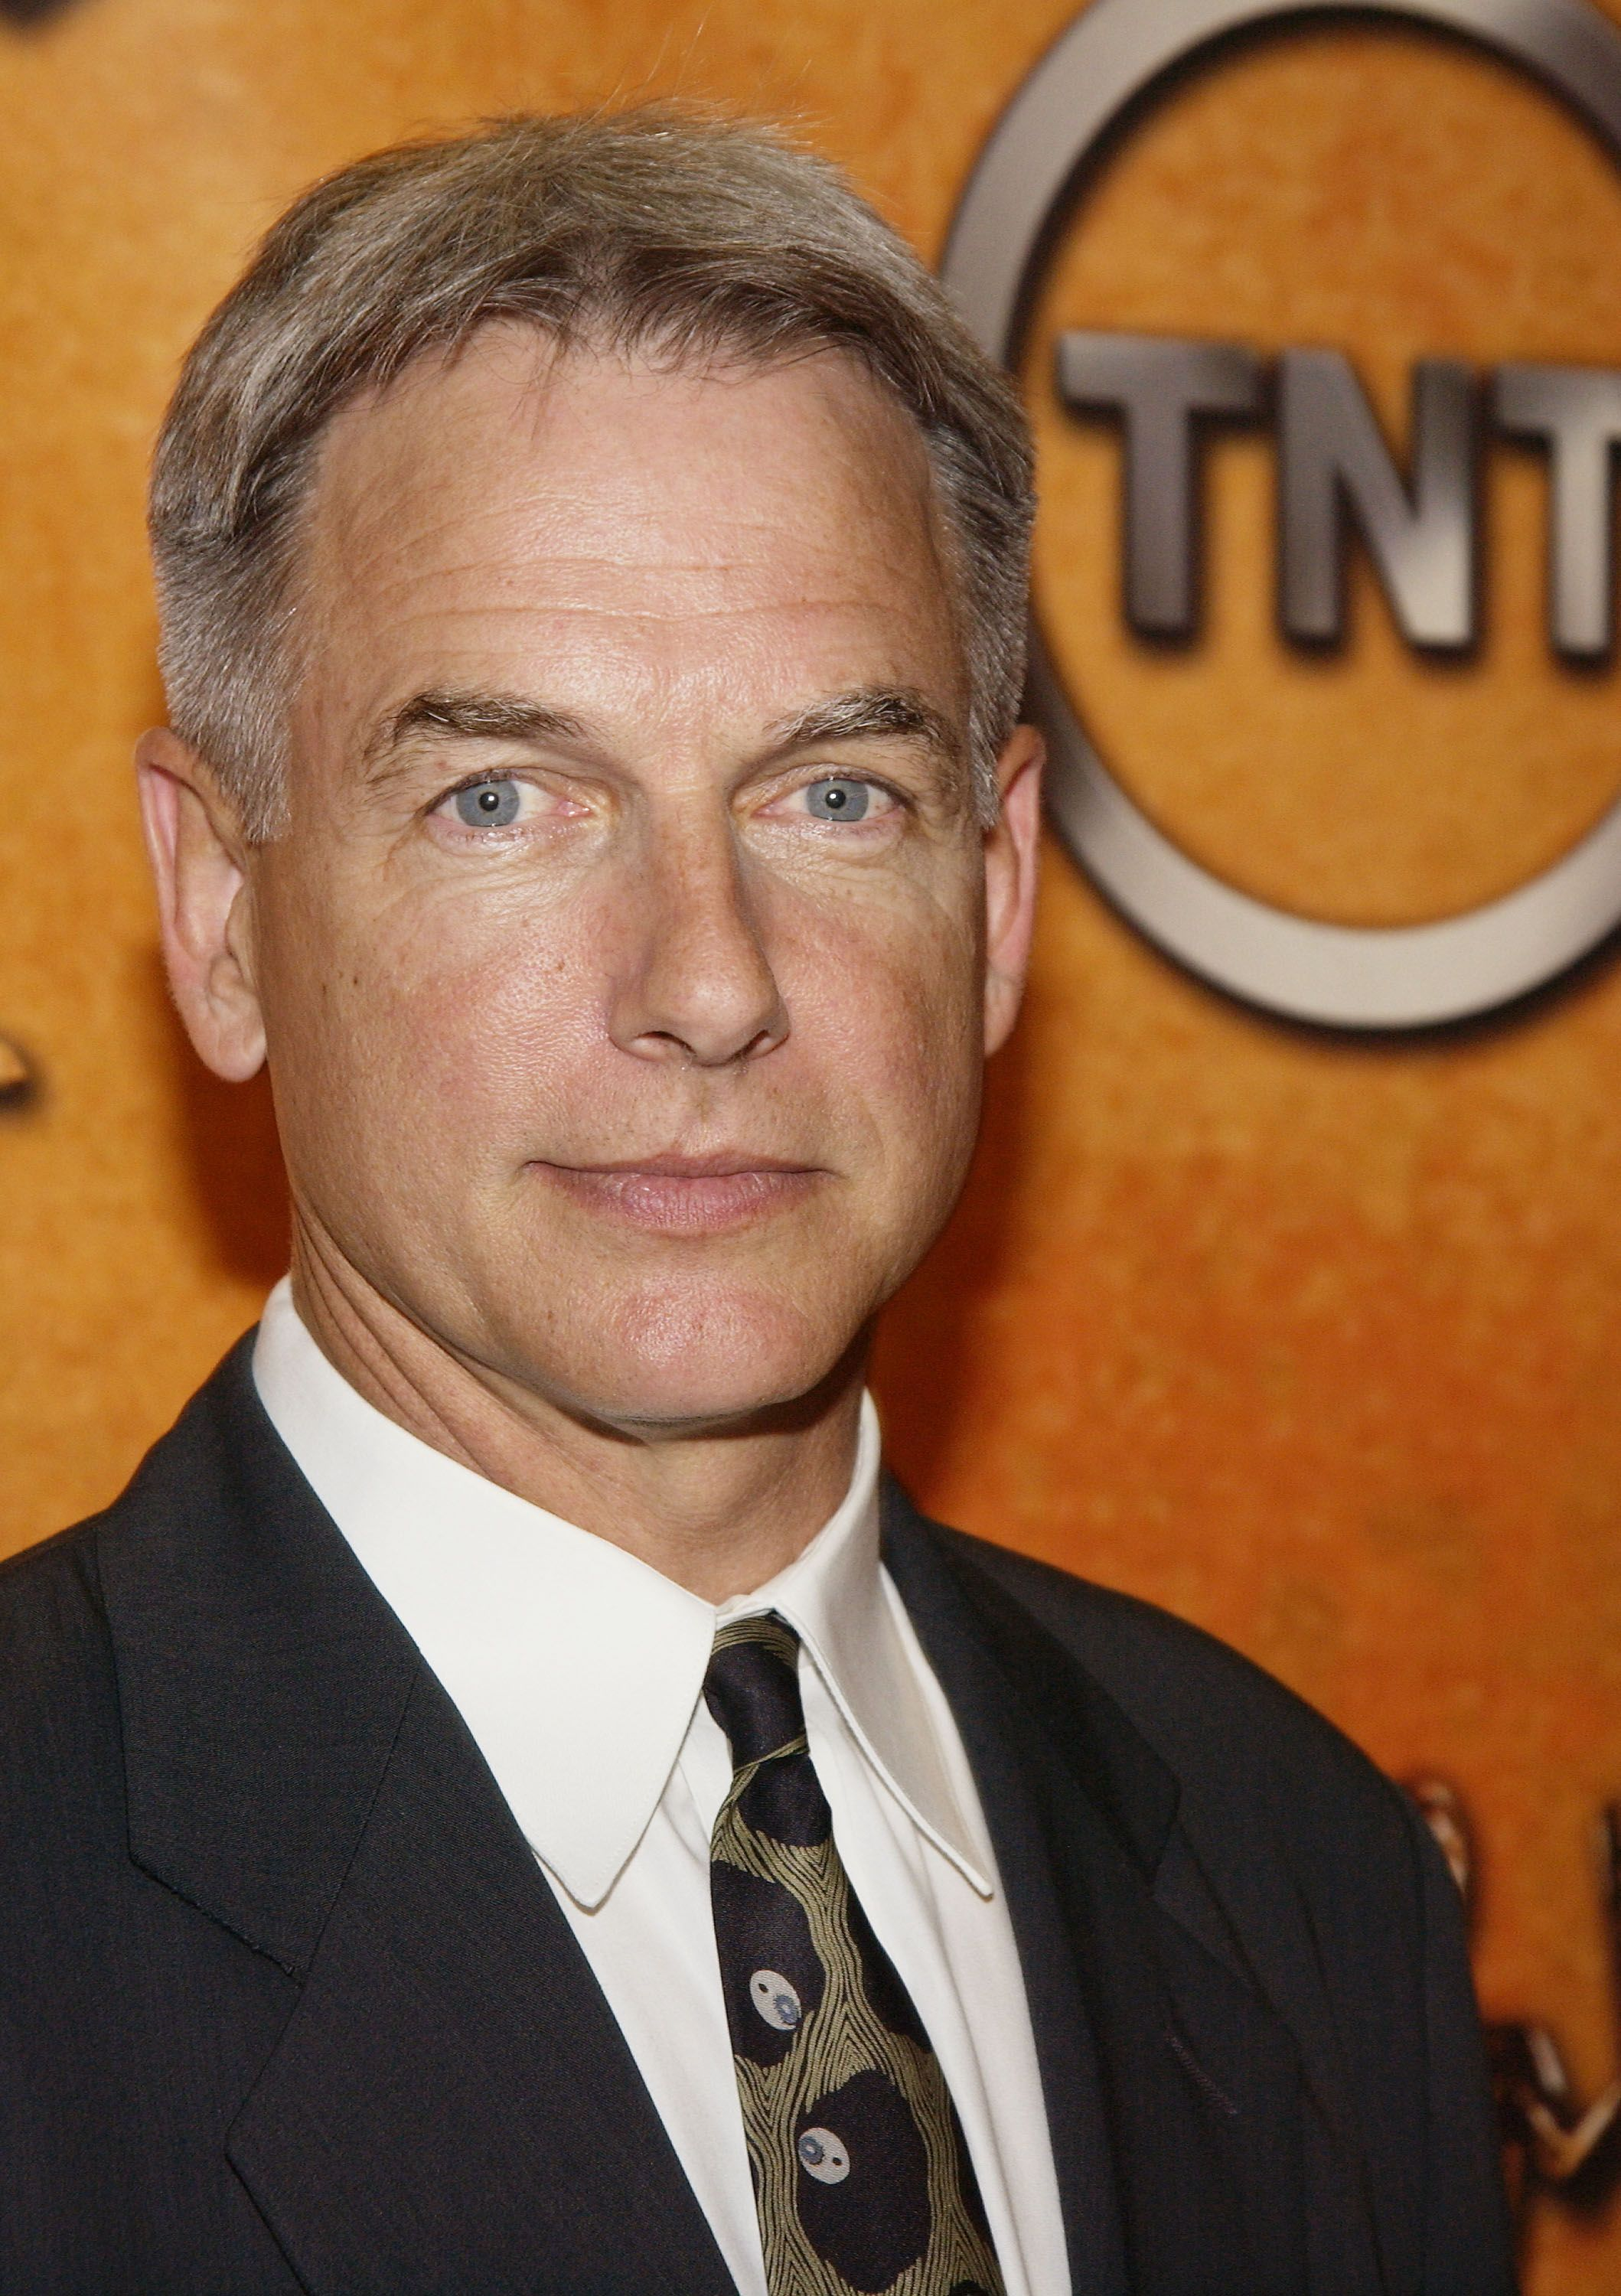 Mark Harmon is not planning on leaving the show / Getty Images